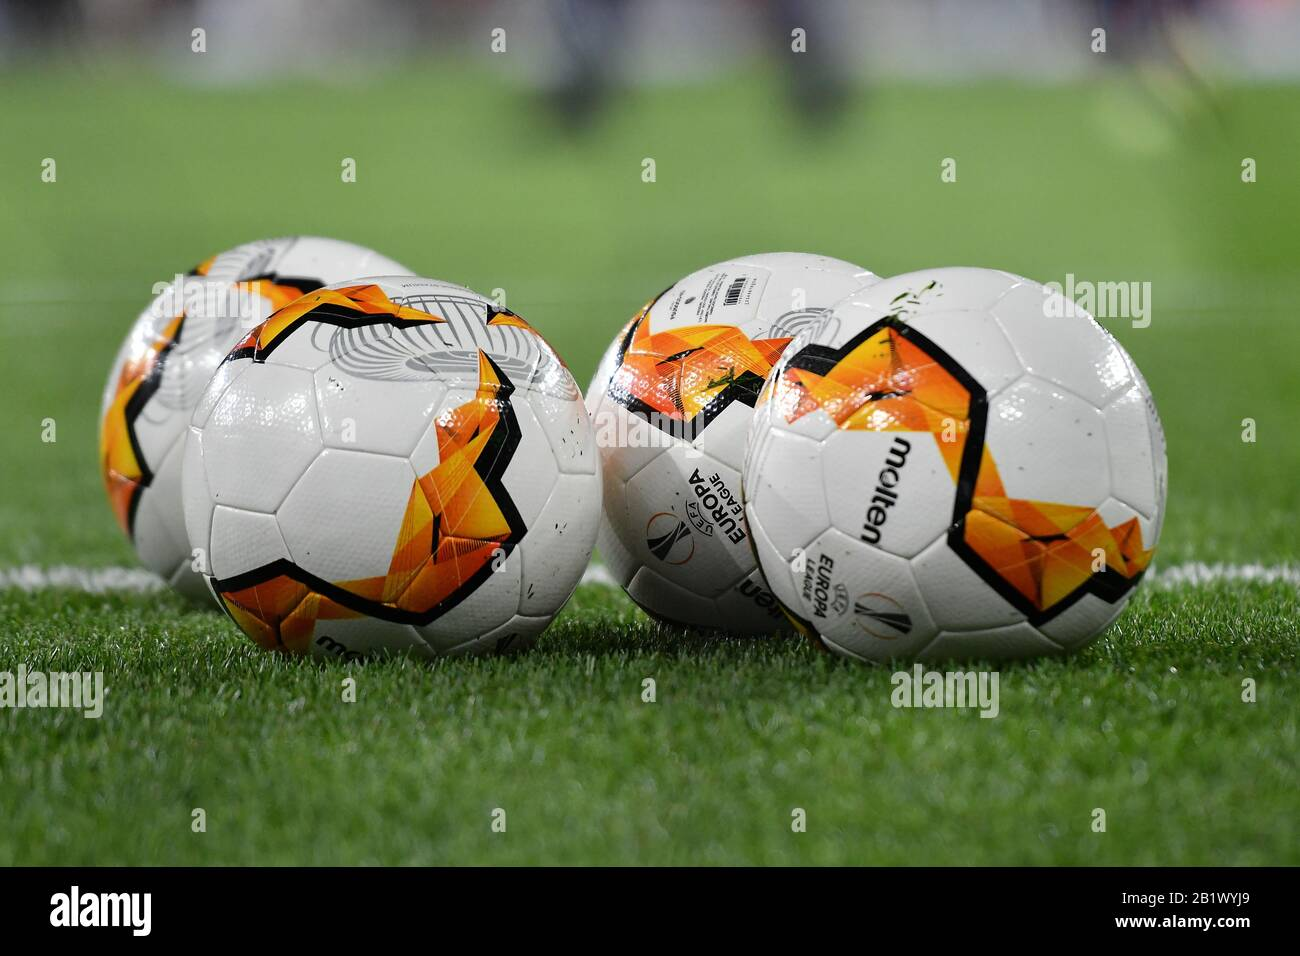 london england february 27th the official match ball during the uefa europa league match between arsenal https www alamy com london england february 27th the official match ball during the uefa europa league match between arsenal and olympiacos fc at the emirates stadium london on thursday 27th february 2020 credit ivan yordanov mi newseditorial use only credit mi news sport alamy live news image345392497 html